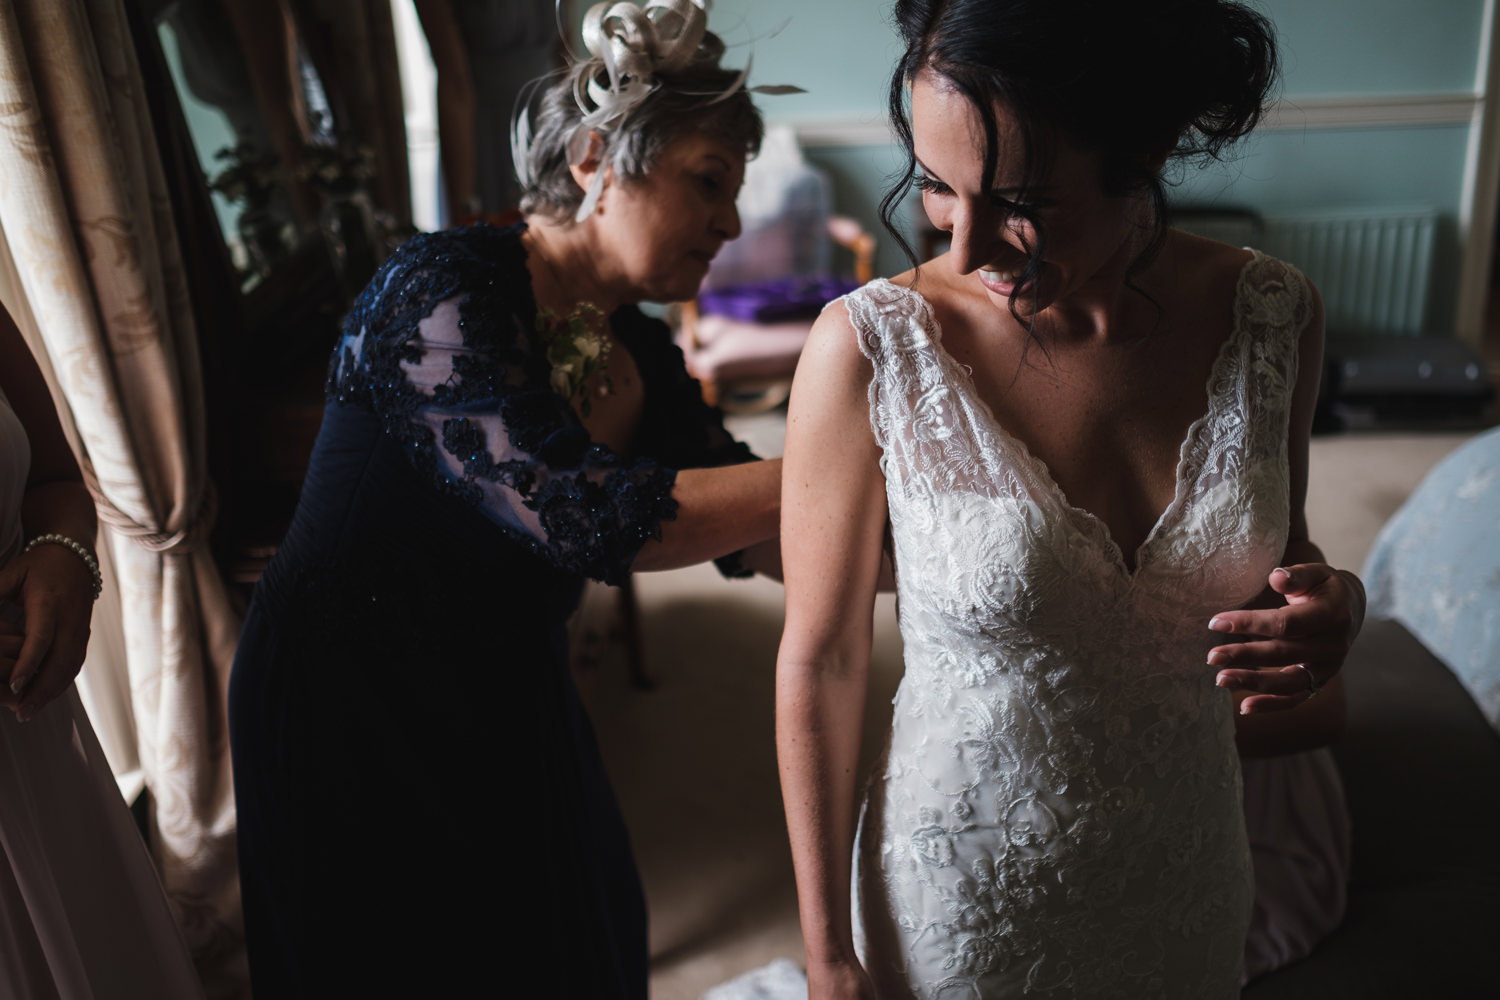 Cloughjordan house wedding photographer